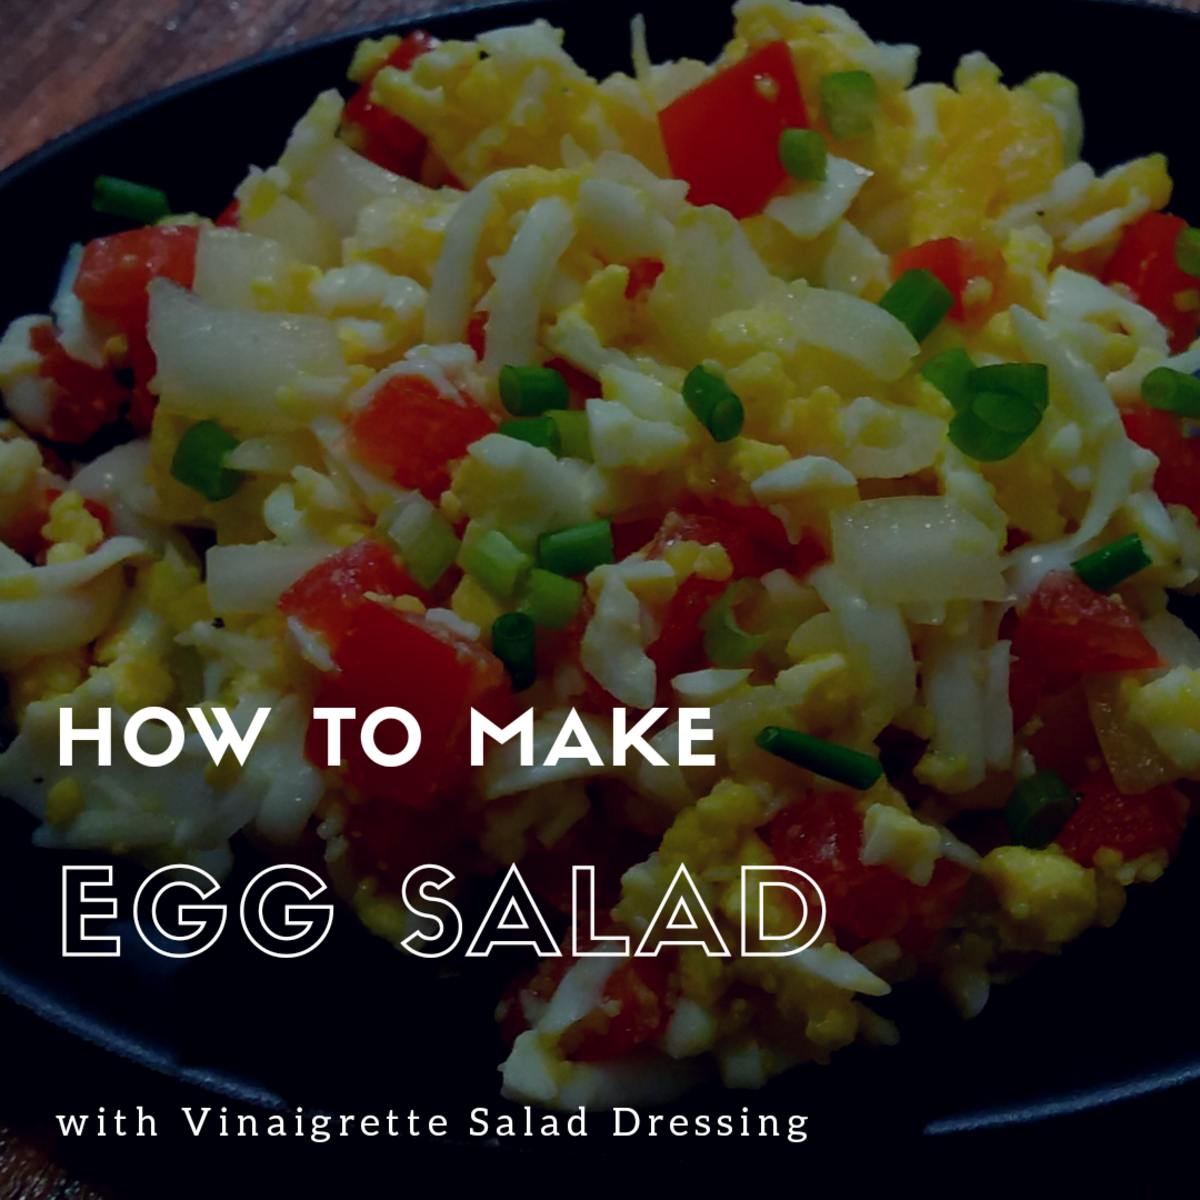 How to Make Egg Salad With Vinaigrette Salad Dressing